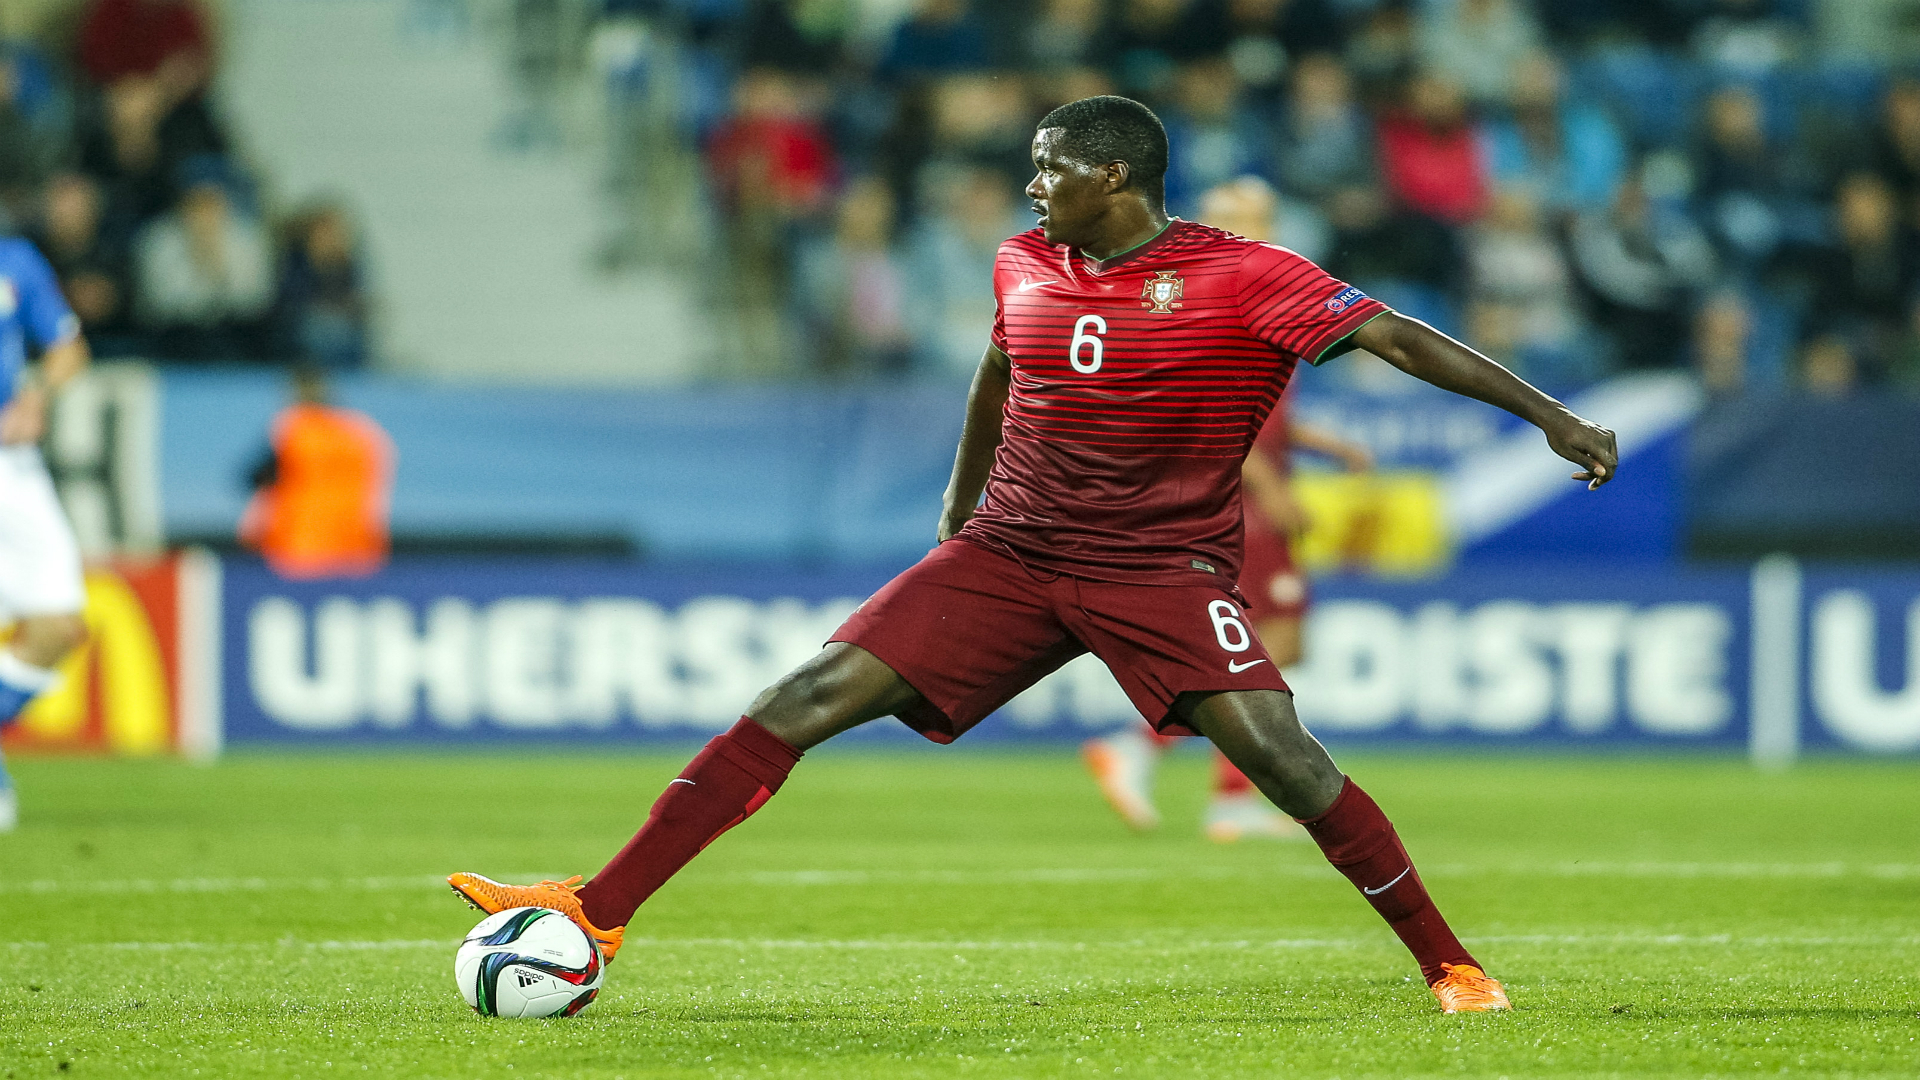 William Carvalho Portugal European under 21 Championships